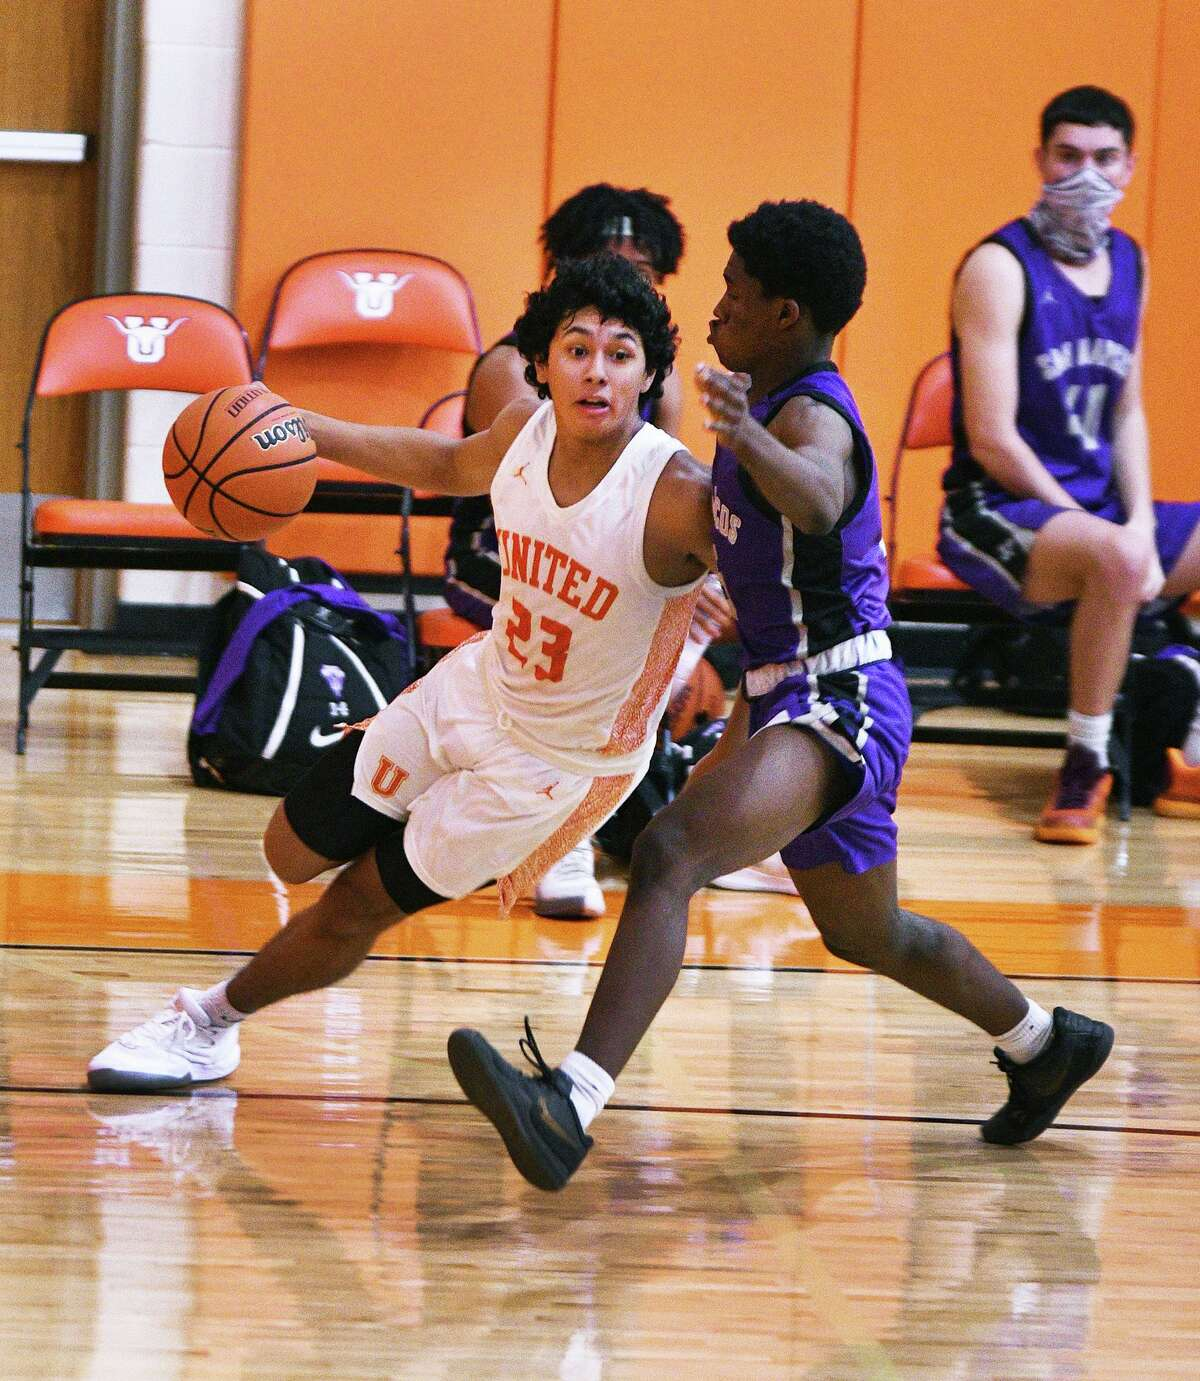 Carlos Castro and the United Longhorns will host the LBJ Wolves at 7 p.m. Tuesday.